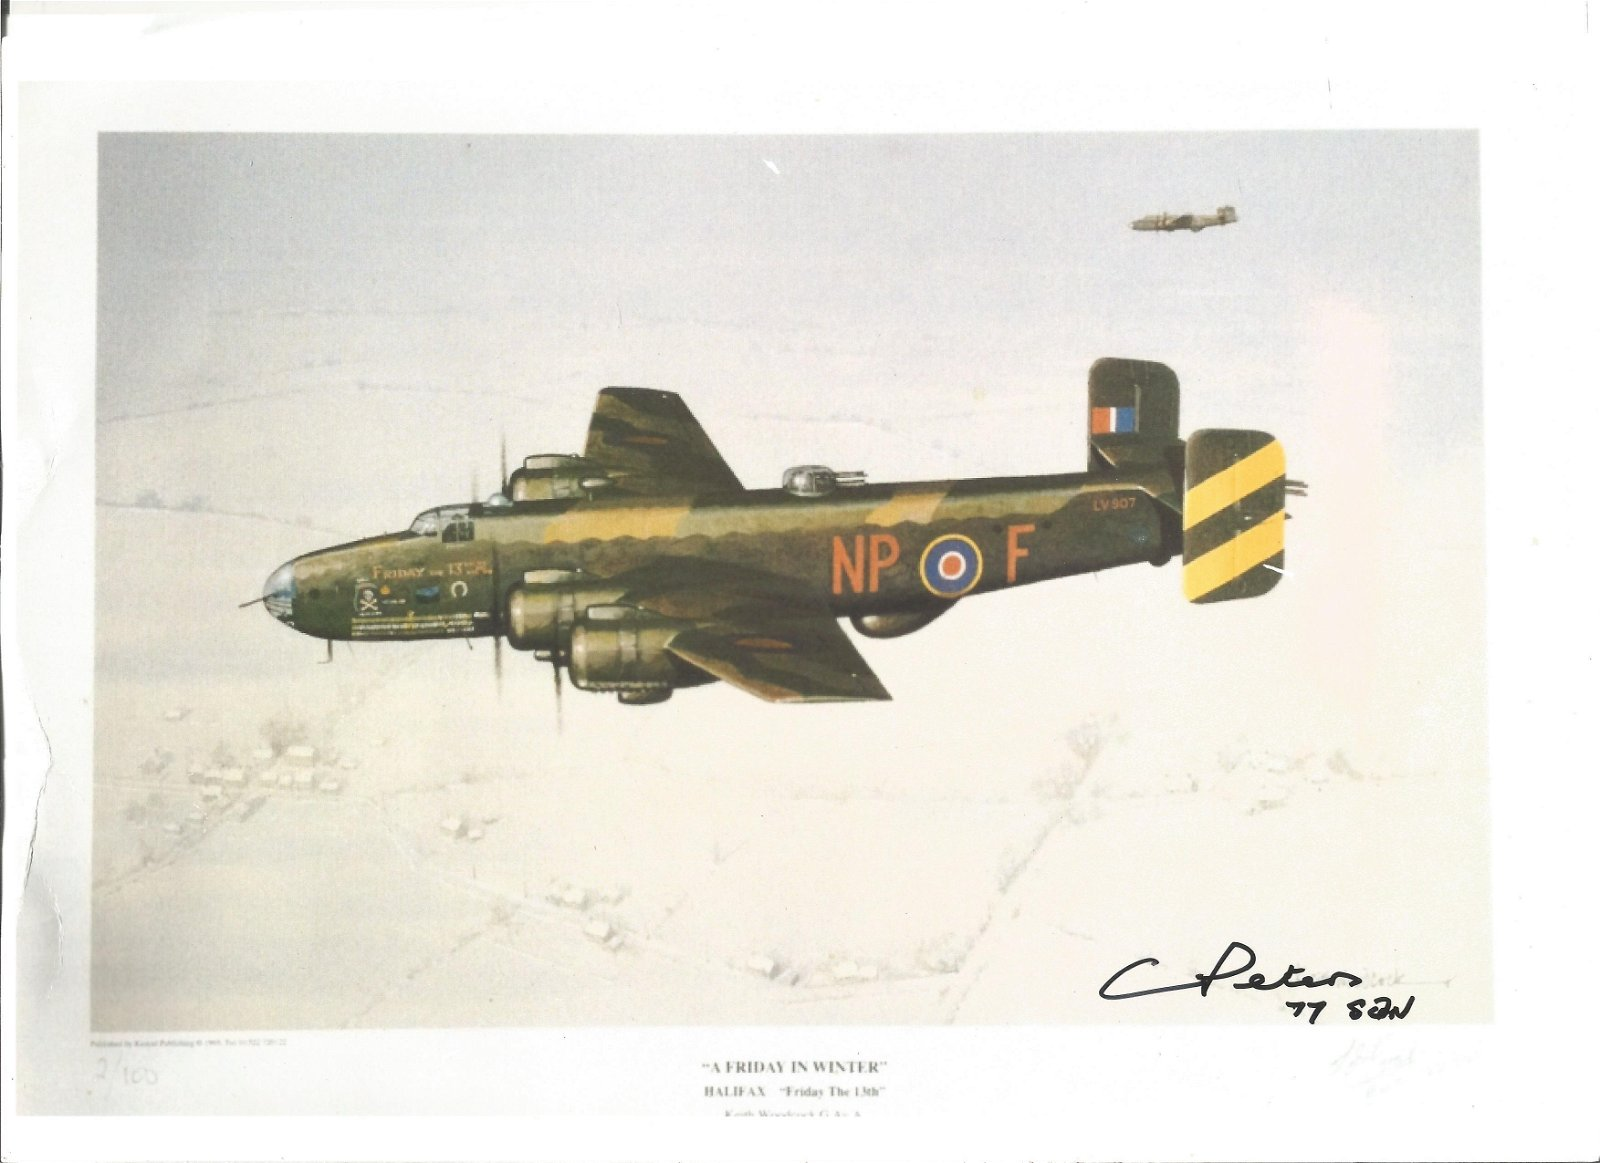 WW2 Cyril Peters signed 12 x 8 colour photo print of